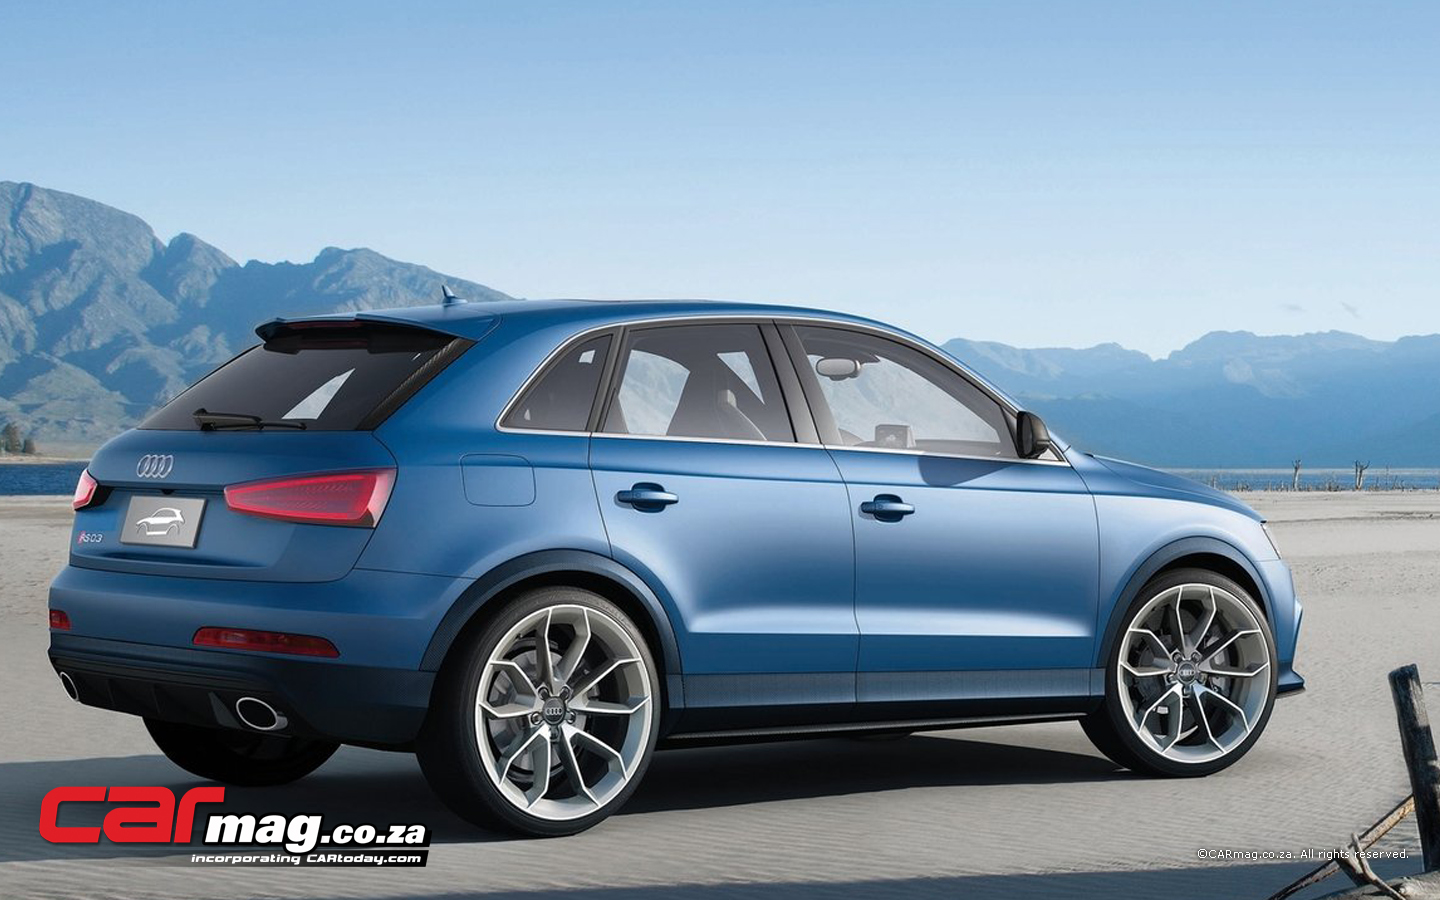 Audi Q3 11 High Quality Audi Q3 Pictures On Motorinfo Org